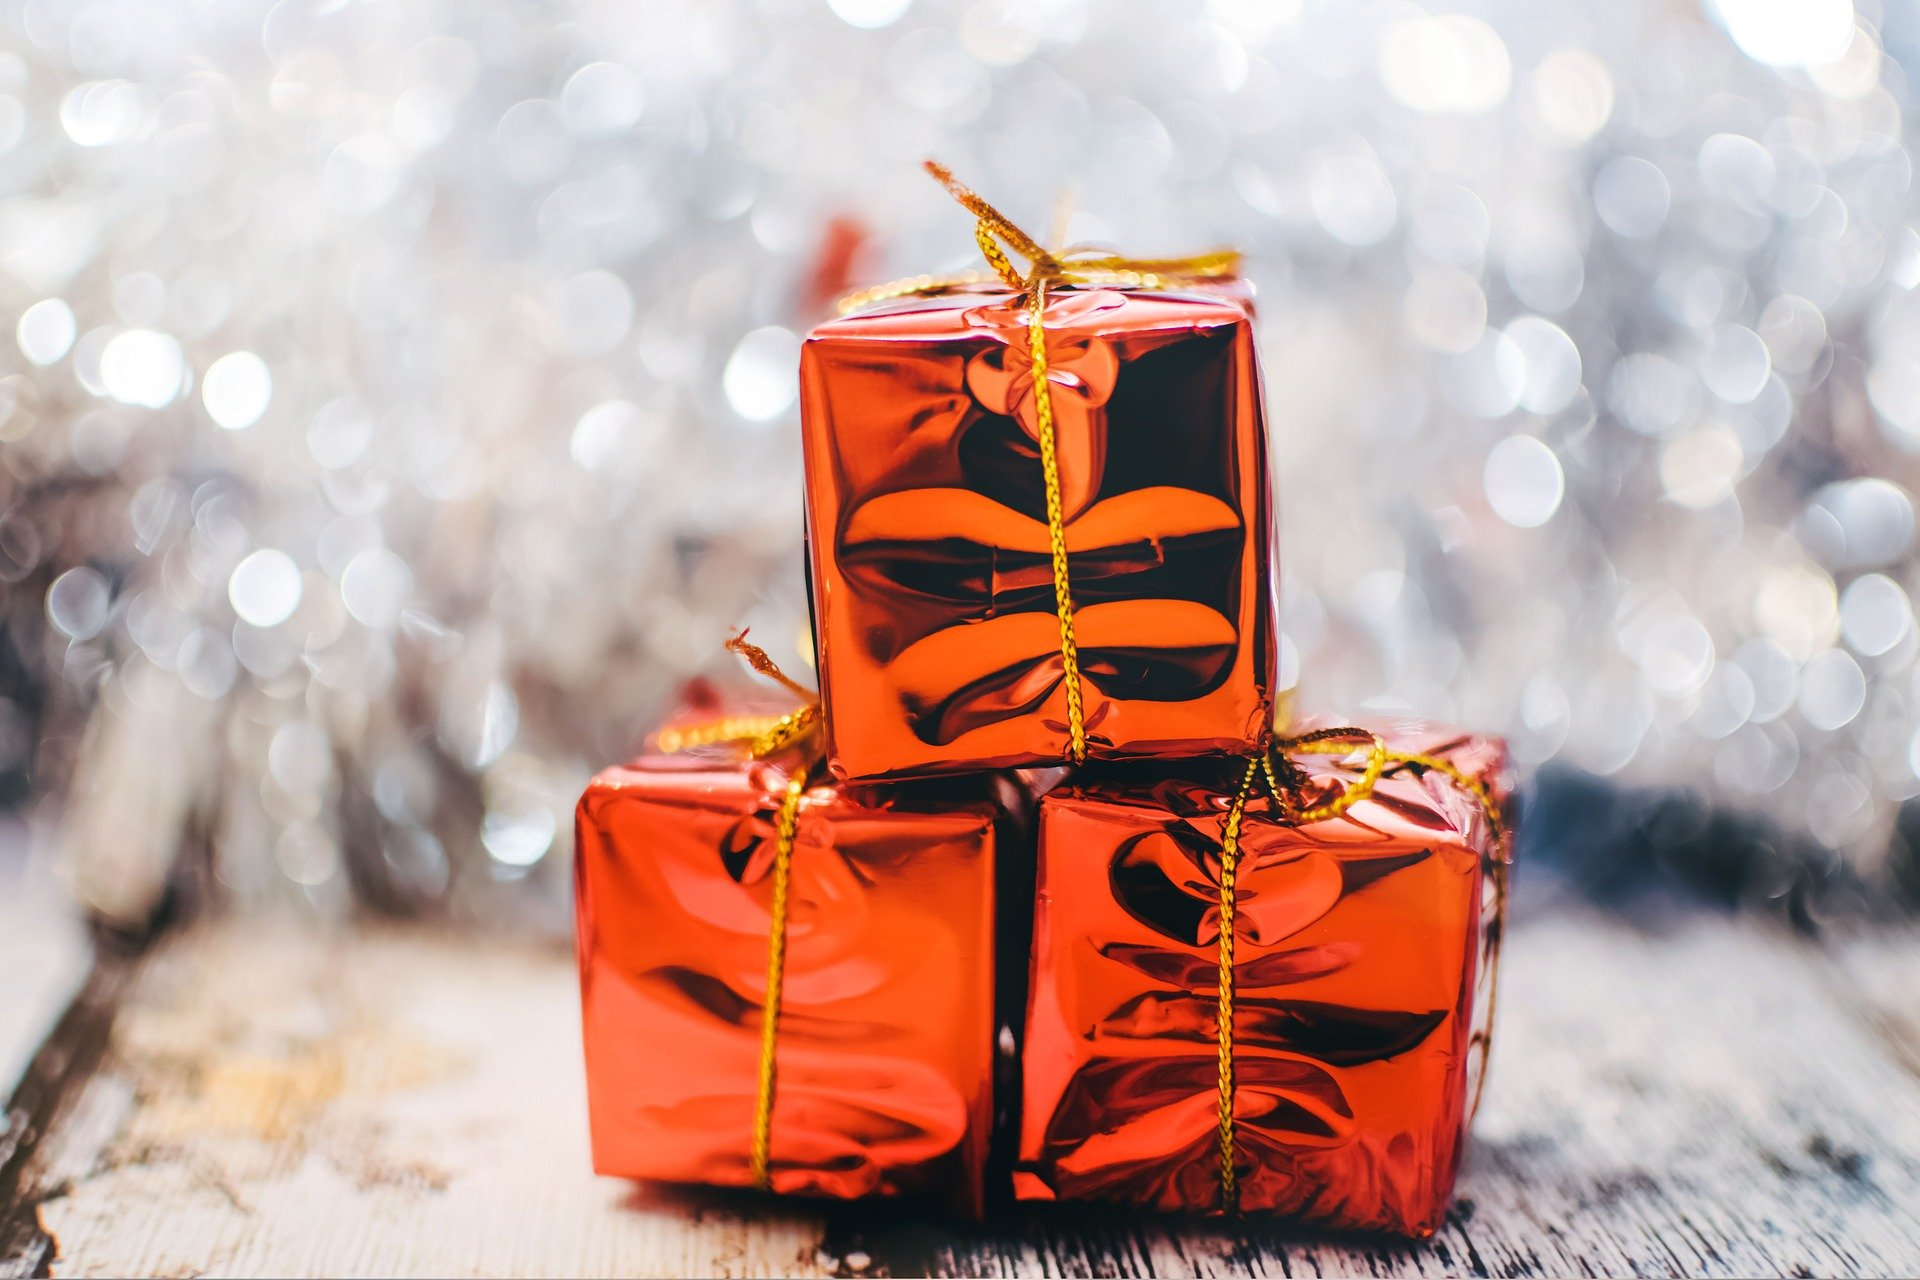 7 Frugal Holiday Gift Ideas You Didn't Think Of